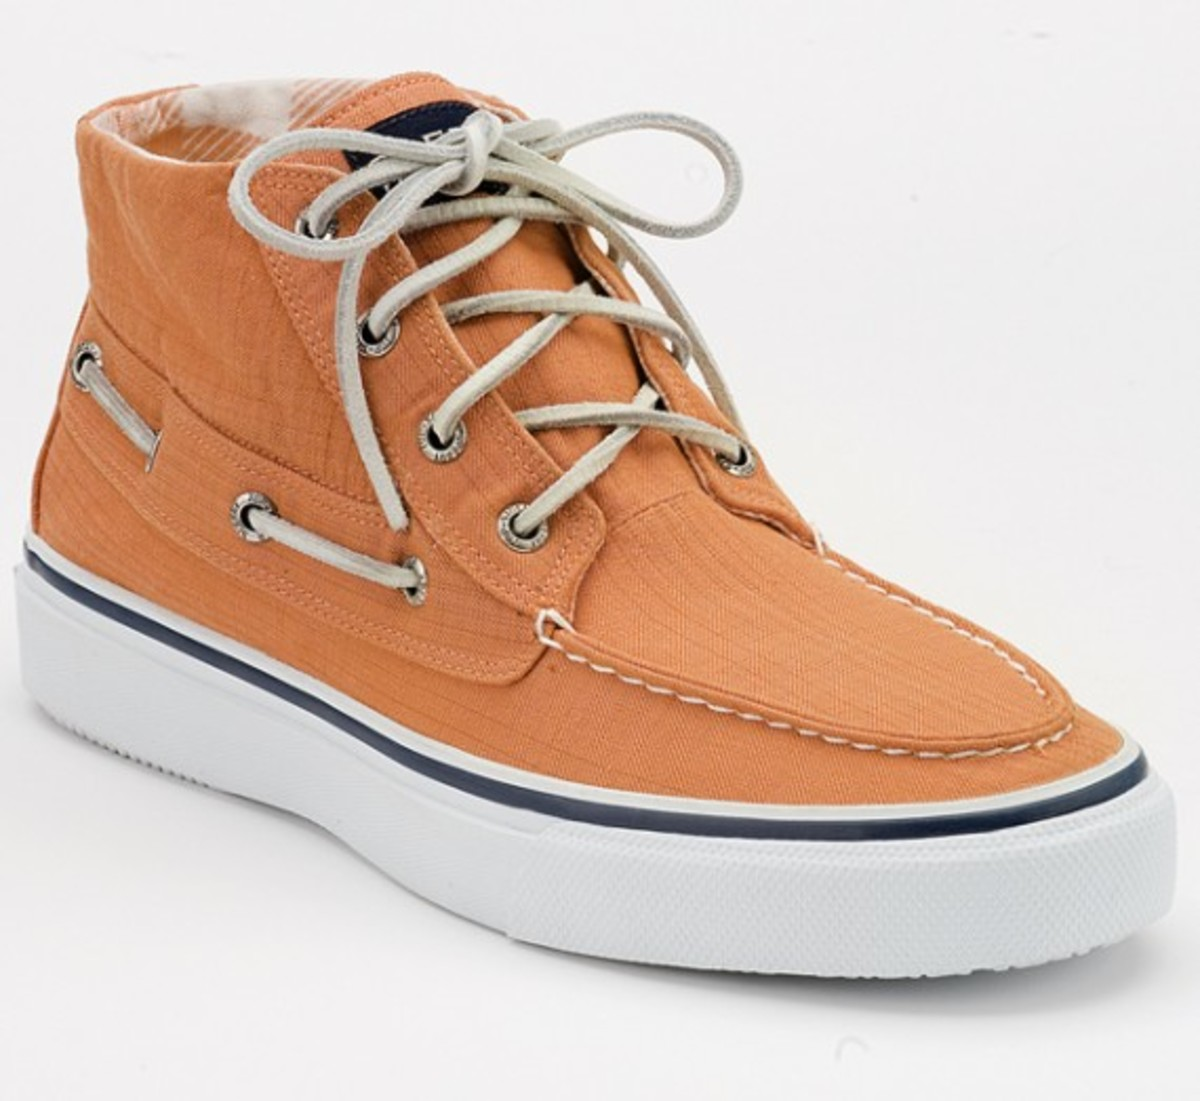 sperry_topsider_ss2010_14